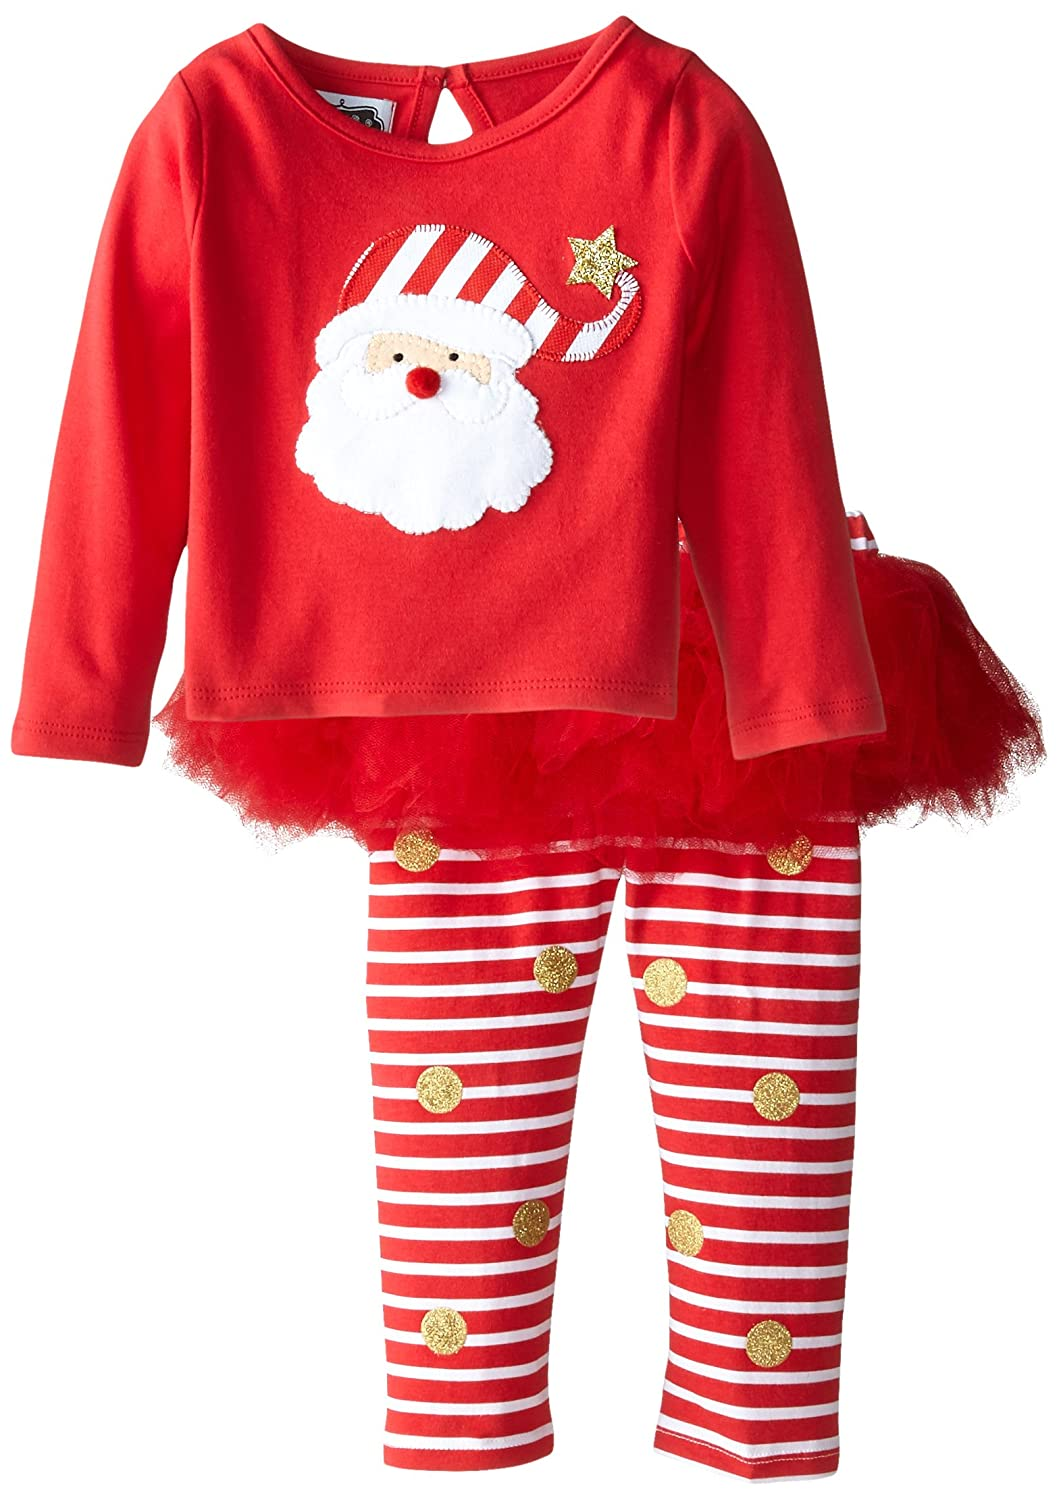 Mud Pie Baby-Girls Newborn Santa Skirt Set Red 9-12 Months 1112277